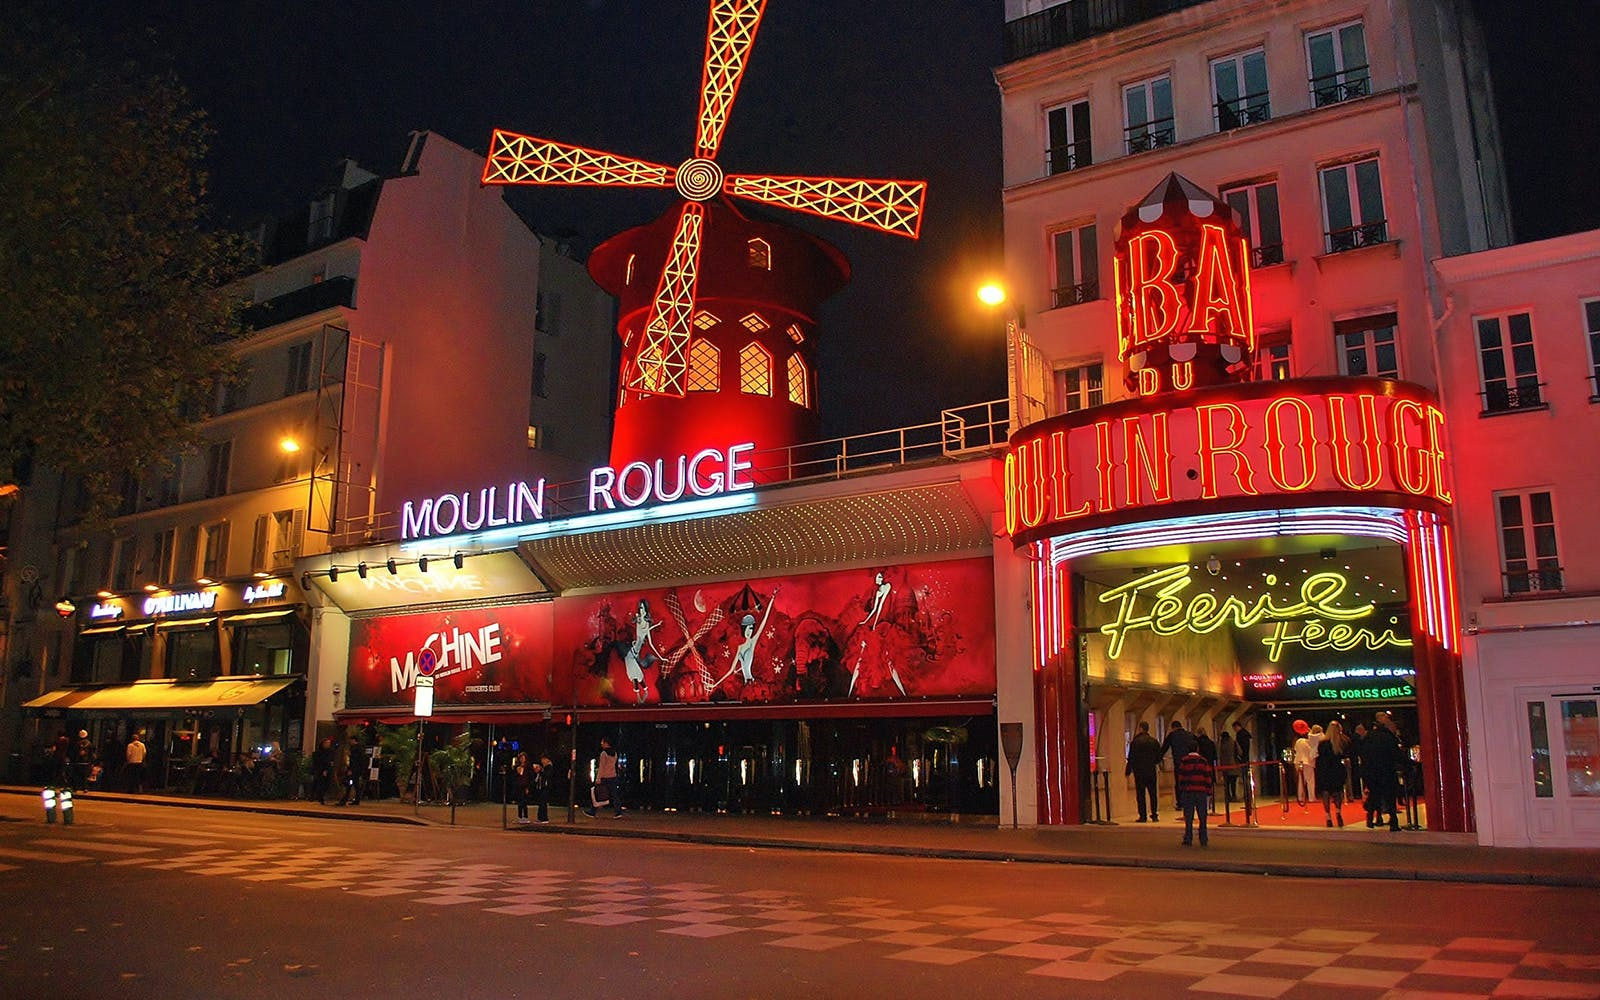 la marina dinner cruise, eiffel tower by night and moulin rouge show + transfers-4